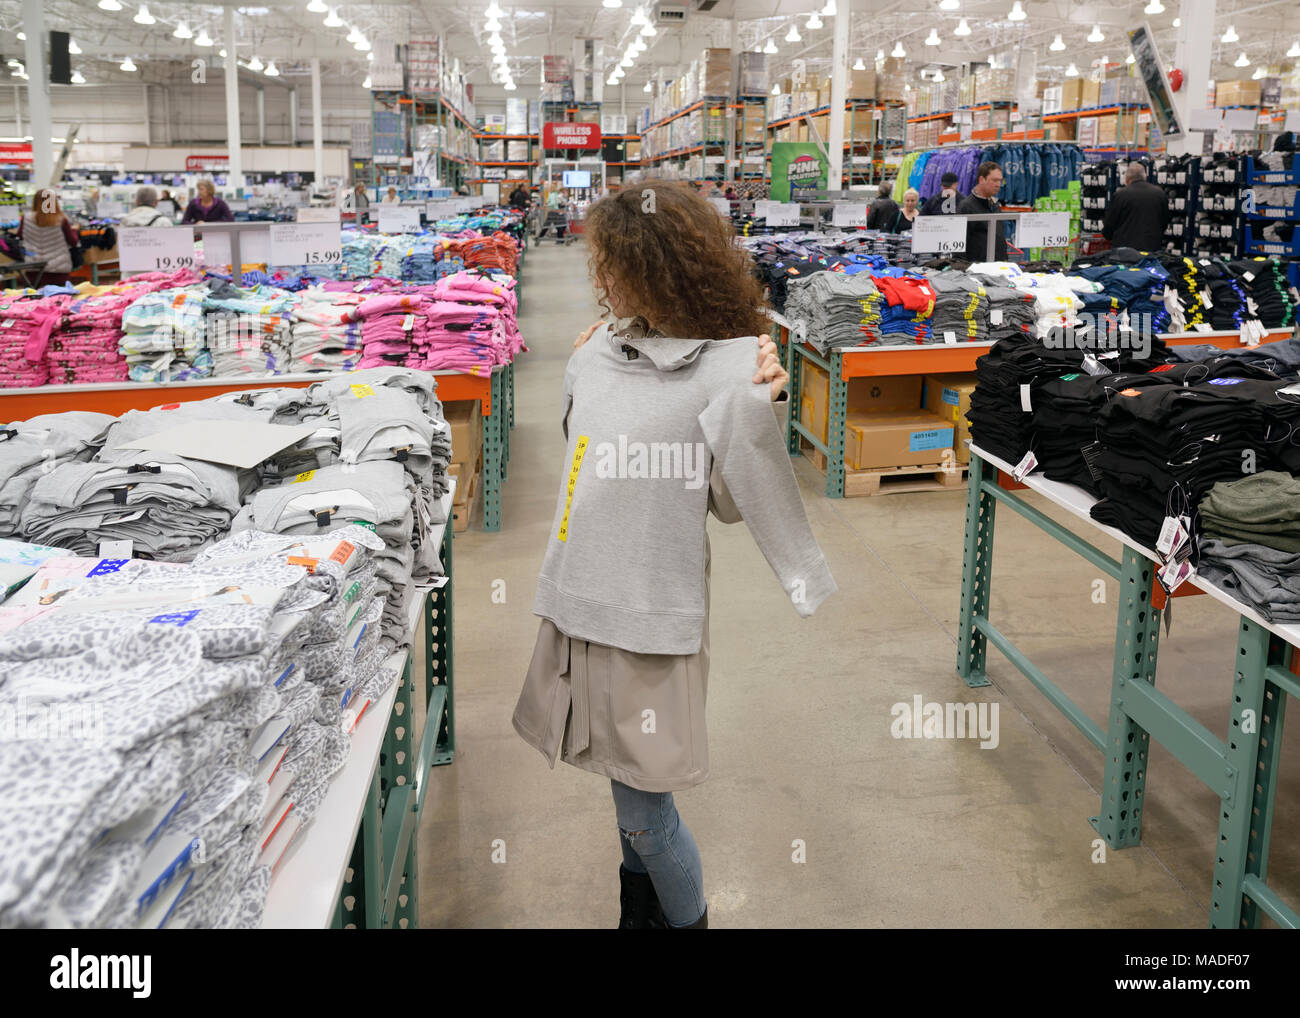 Woman trying on a sweater at Costco Wholesale membership warehouse store womens clothing section. British Columbia, Canada 2017. Stock Photo